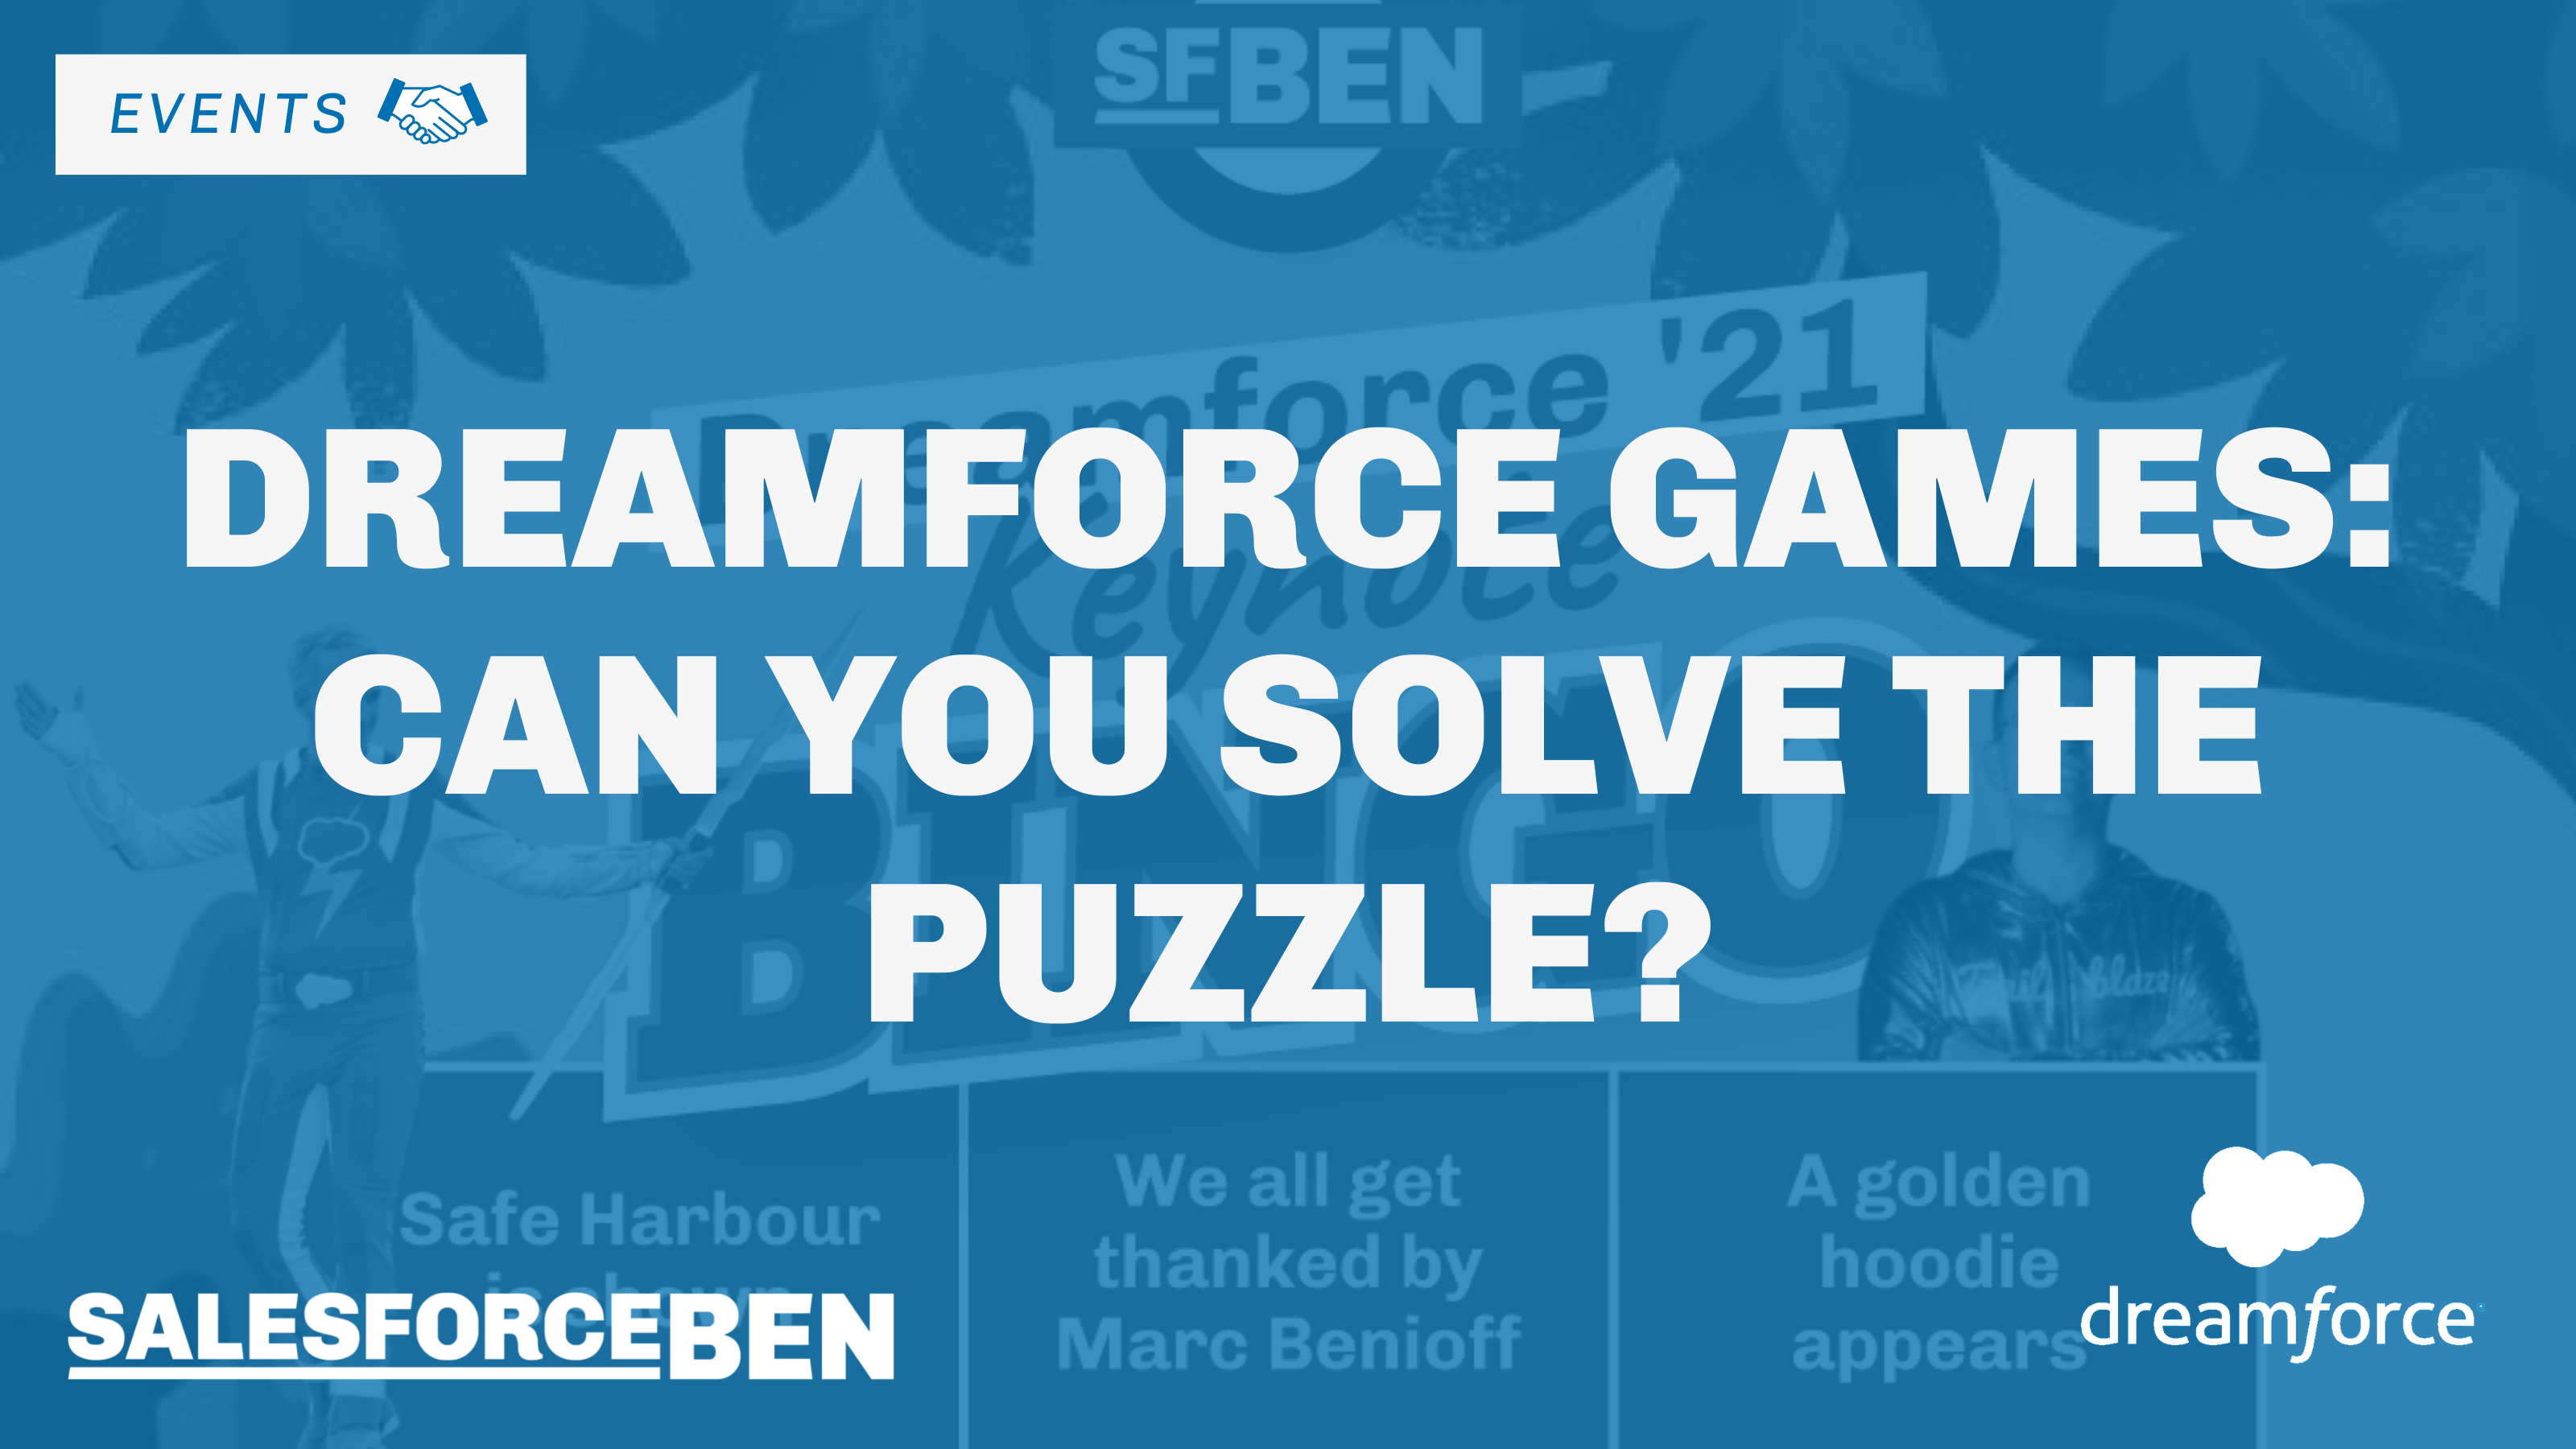 Dreamforce Games – Can You Solve the Puzzle?